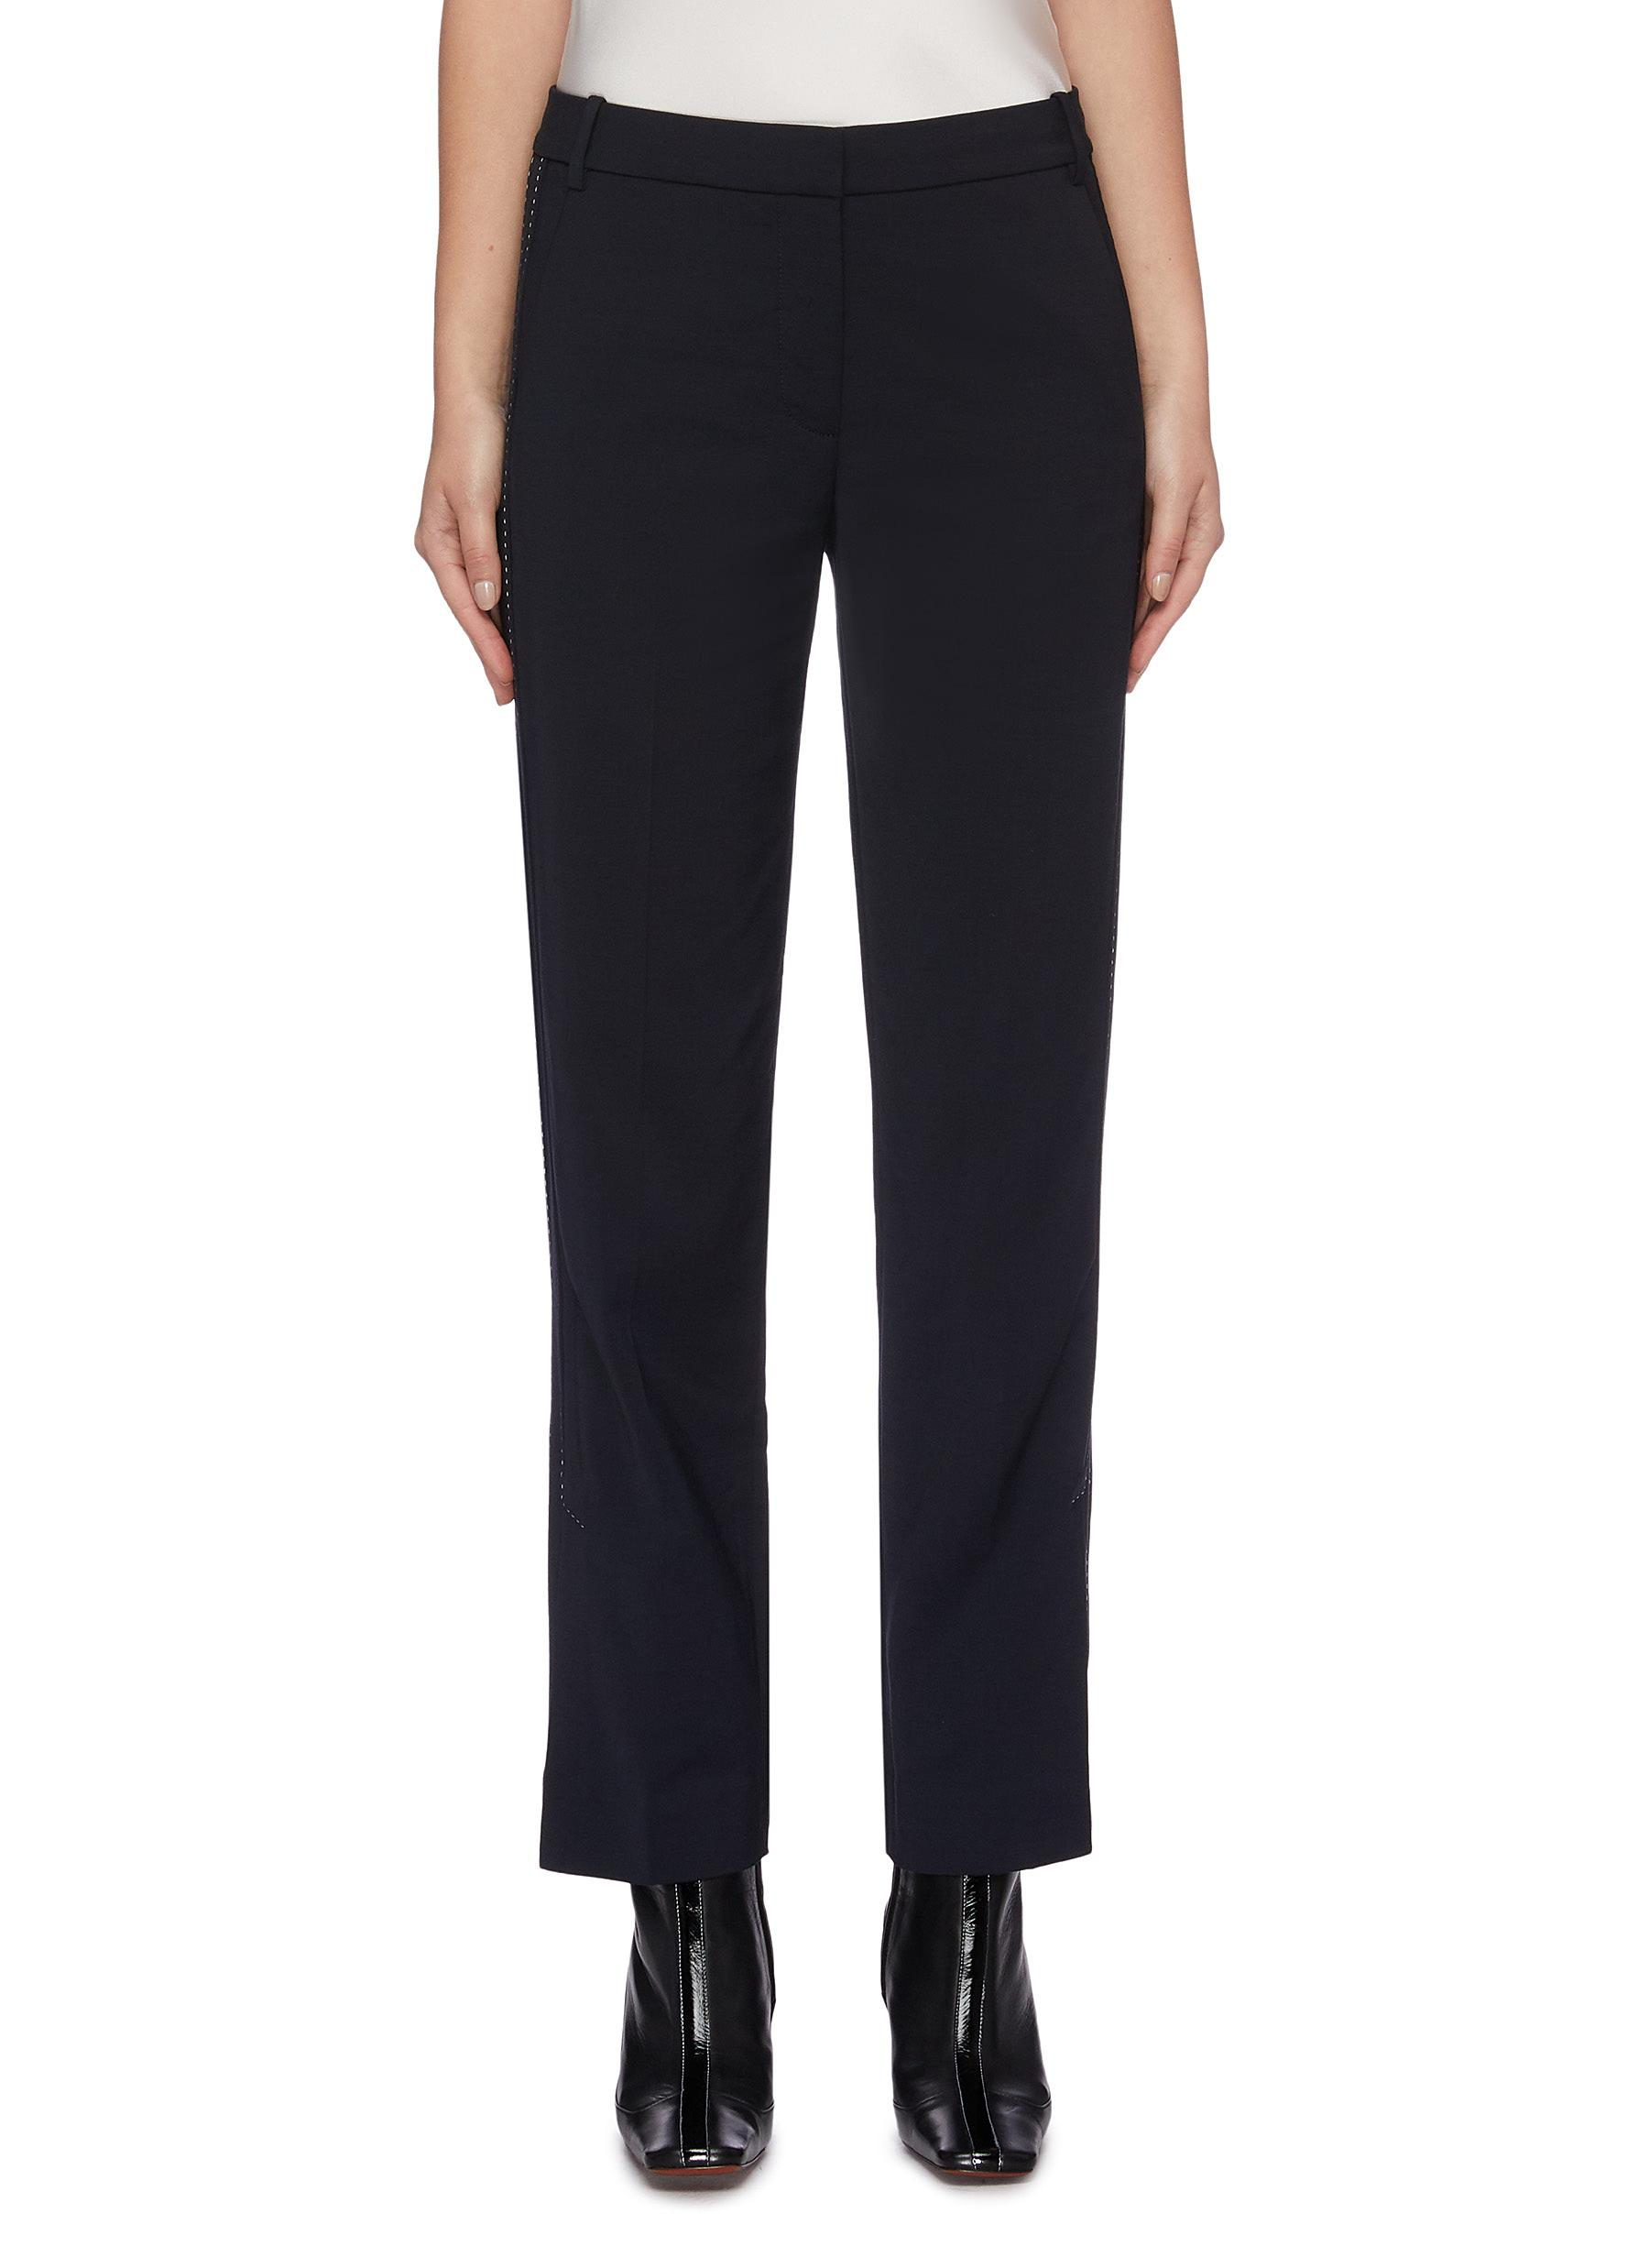 Pinstitch split cuff contrast topstitching suiting pants by Dion Lee